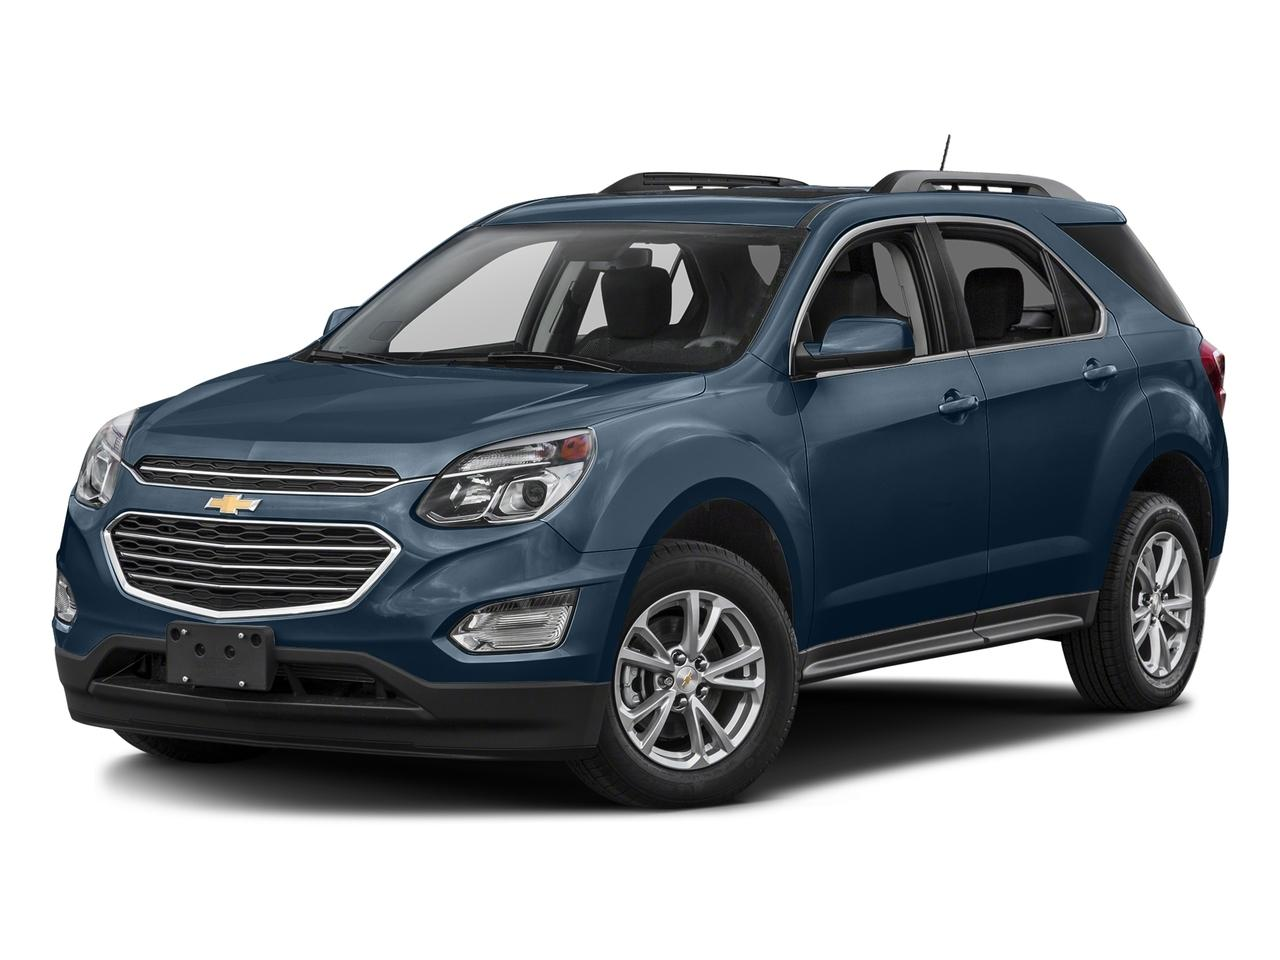 2016 Chevrolet Equinox Vehicle Photo in Spokane, WA 99207